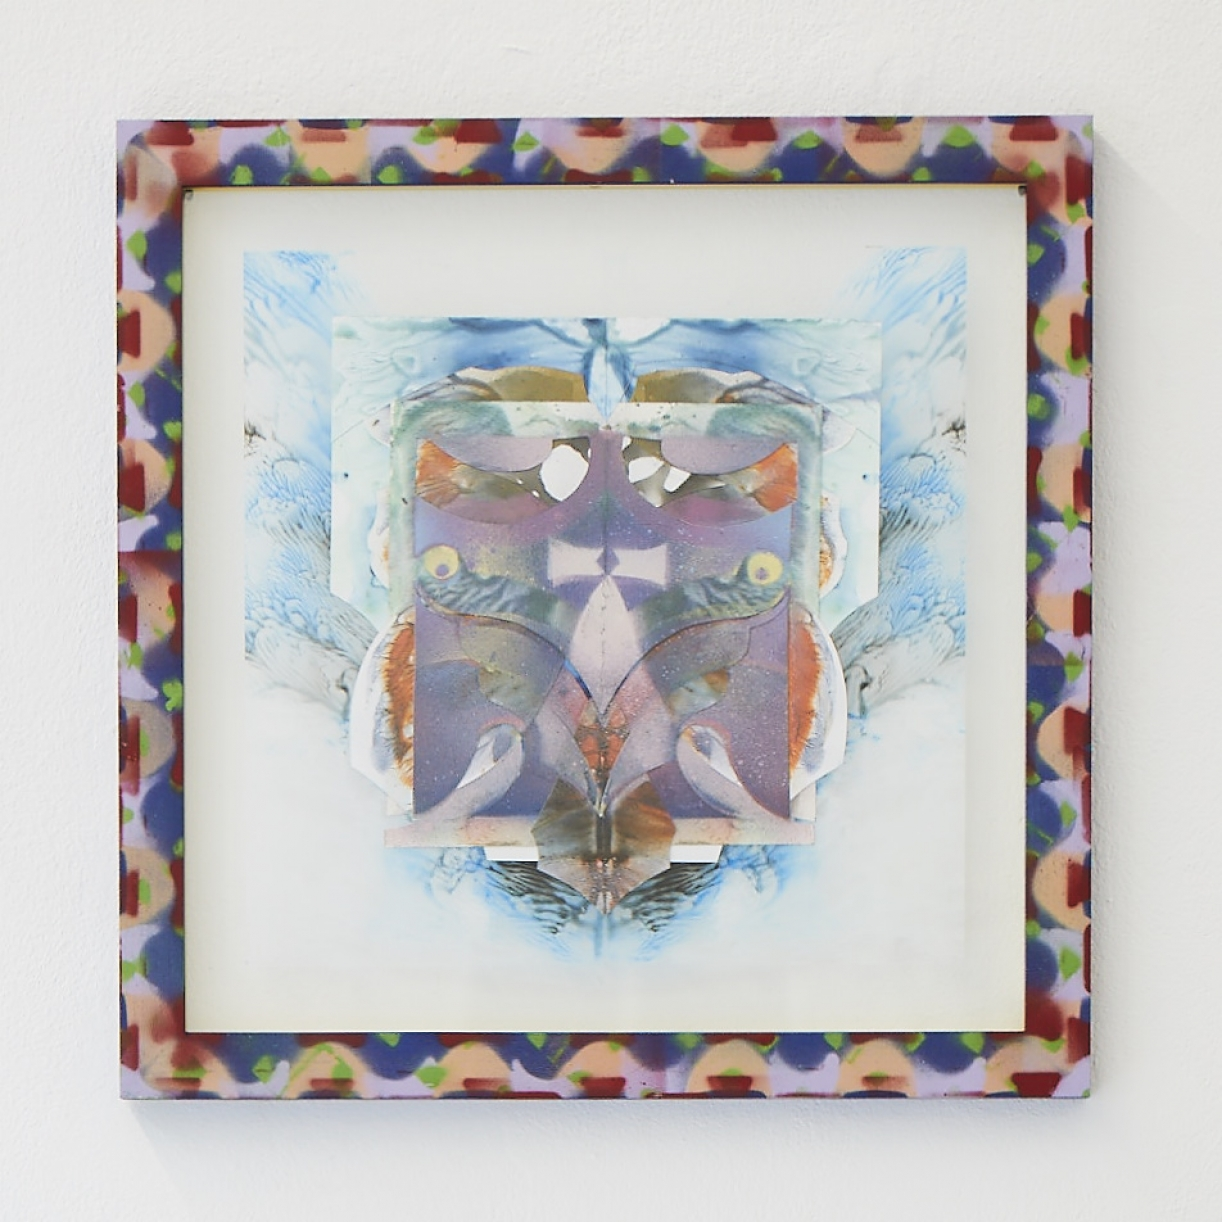 Moritz Altmann, iwa, 2017, mixed media on paper and transparency, sprayed frame, 40,5 x 40,5 cm